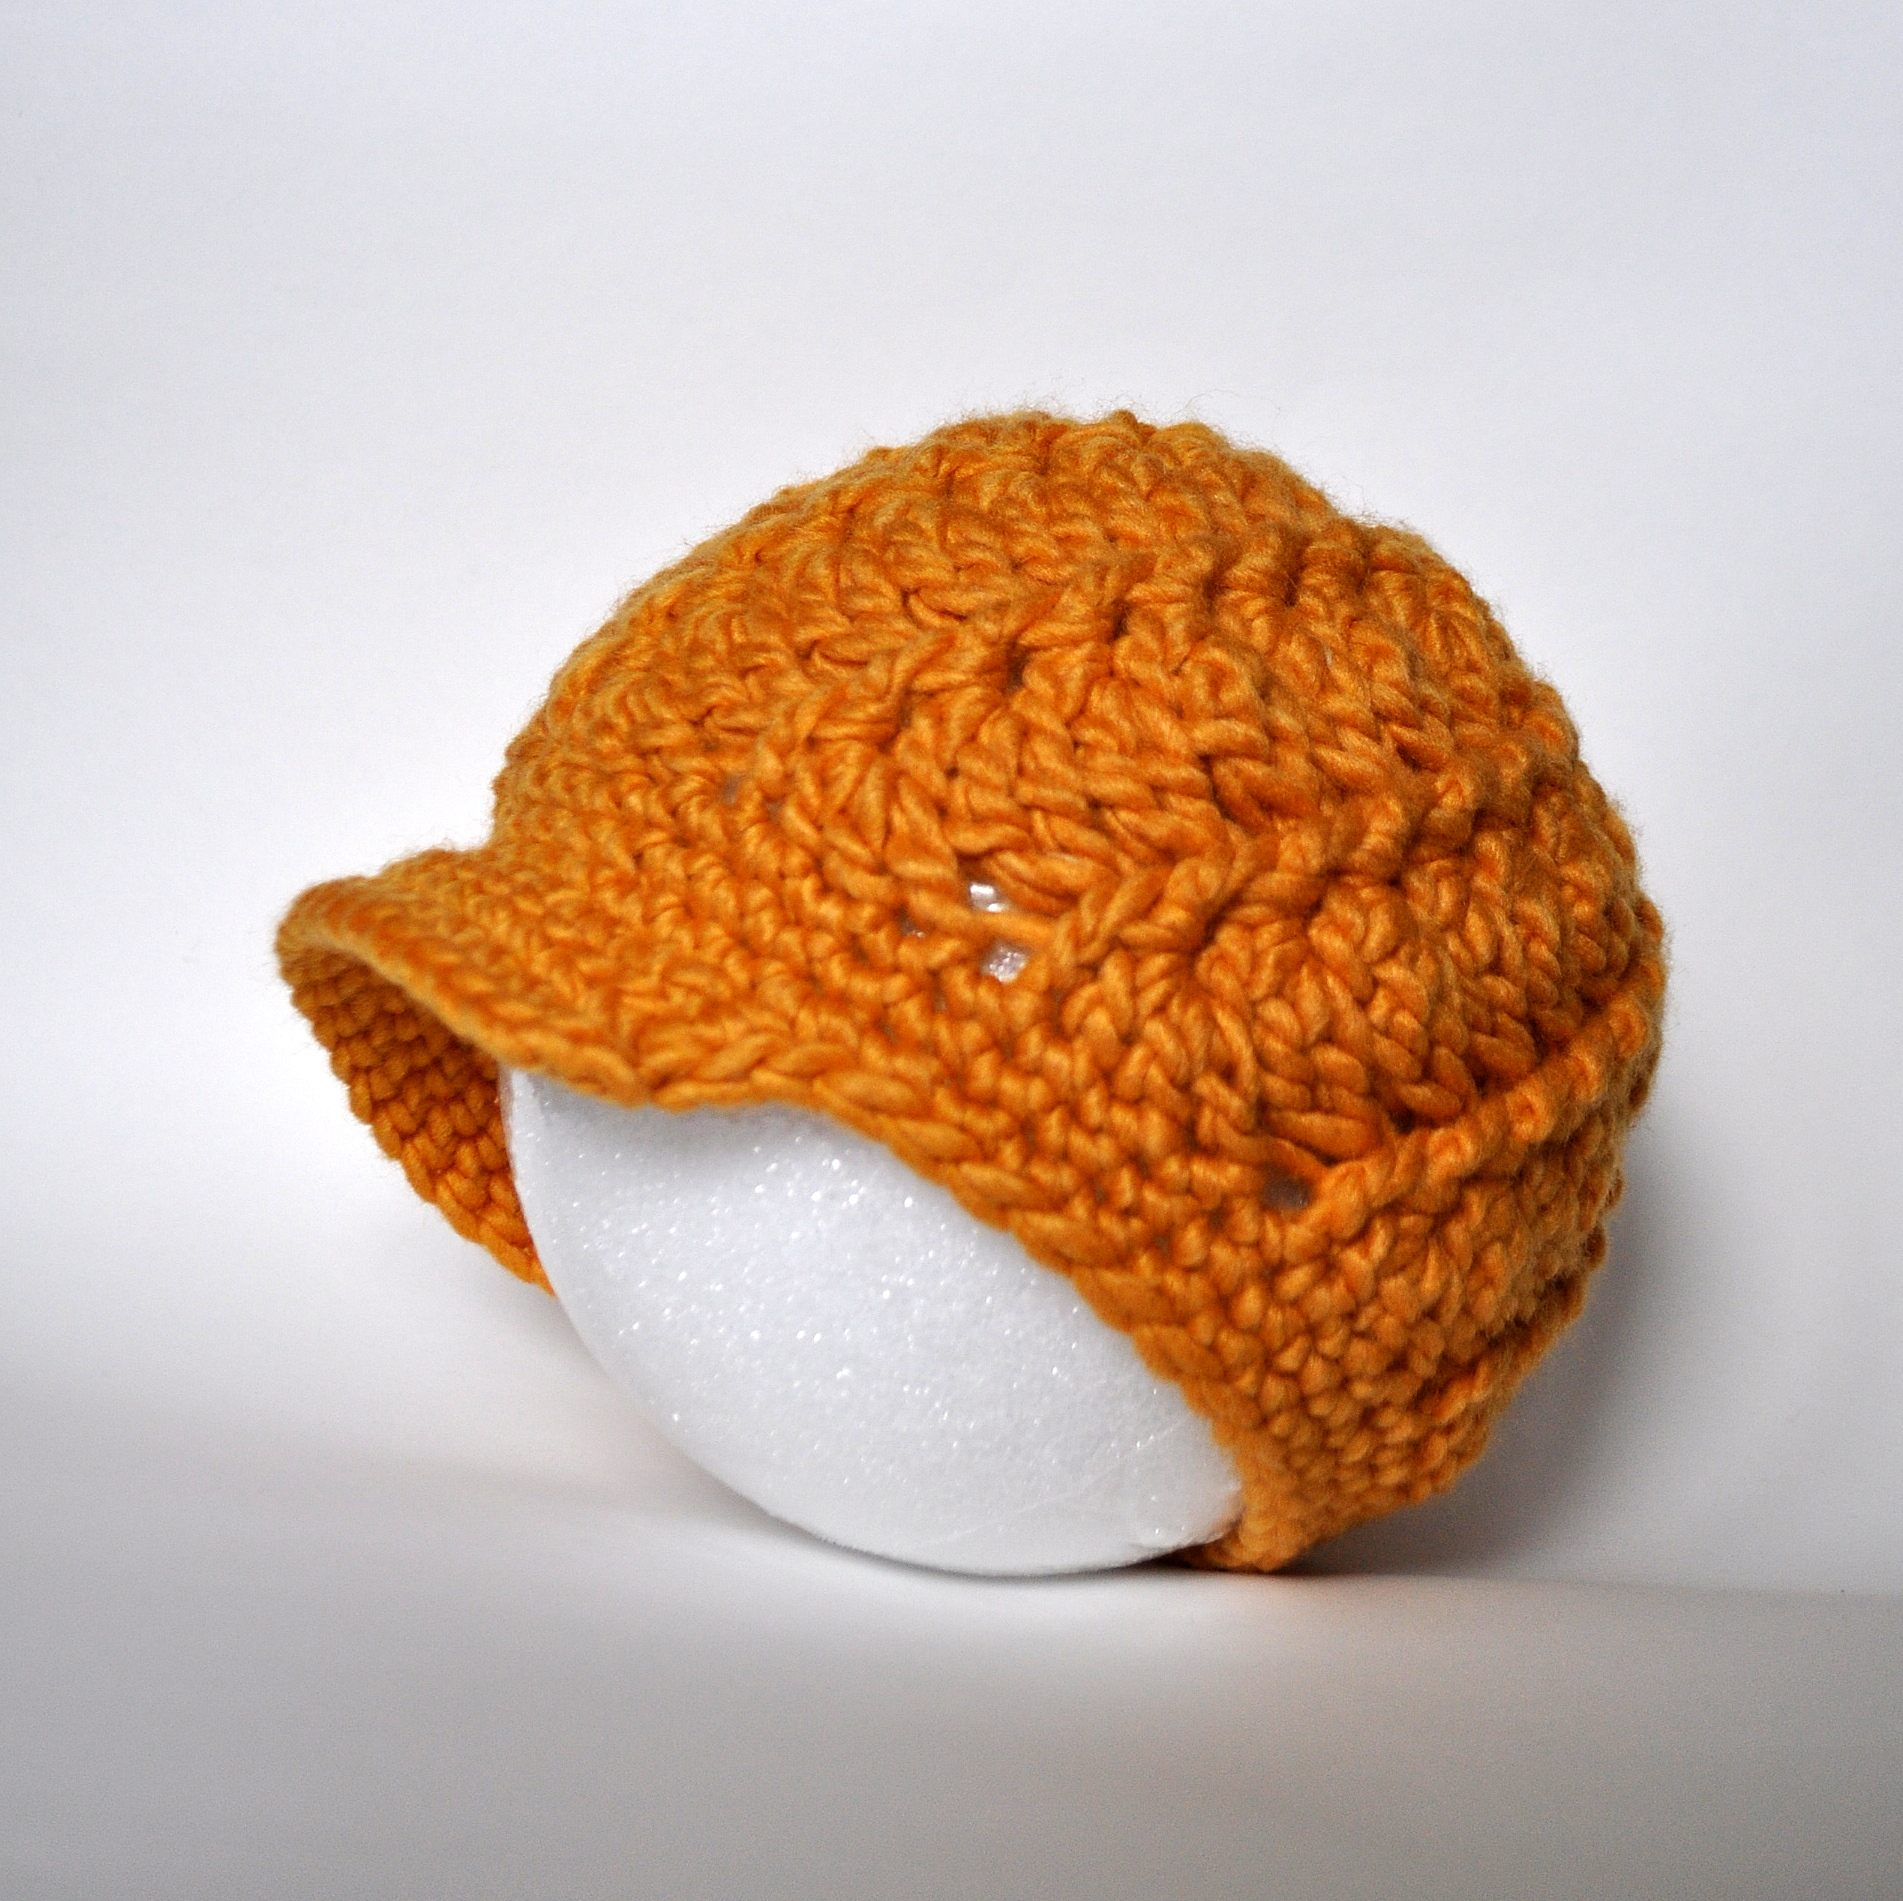 Crochet Baby Hat With Bill Pattern : Free Pattern: Crochet Women s Swirly Brimmed Hat Classy ...